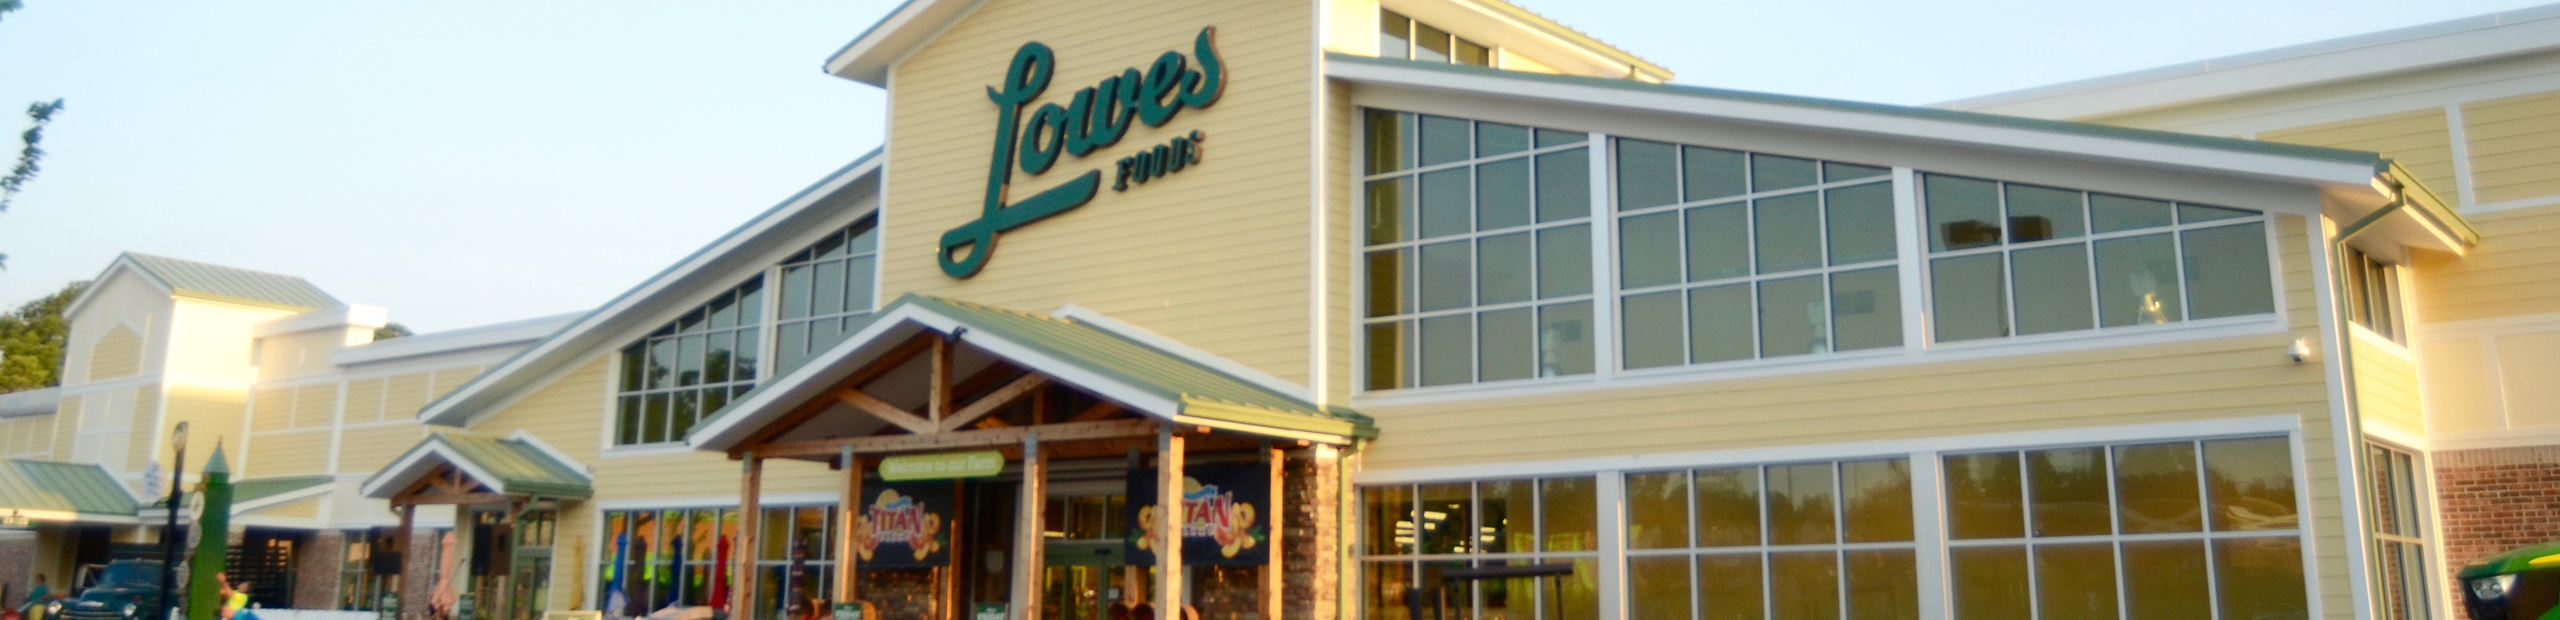 Picture of Lowes Foods Store